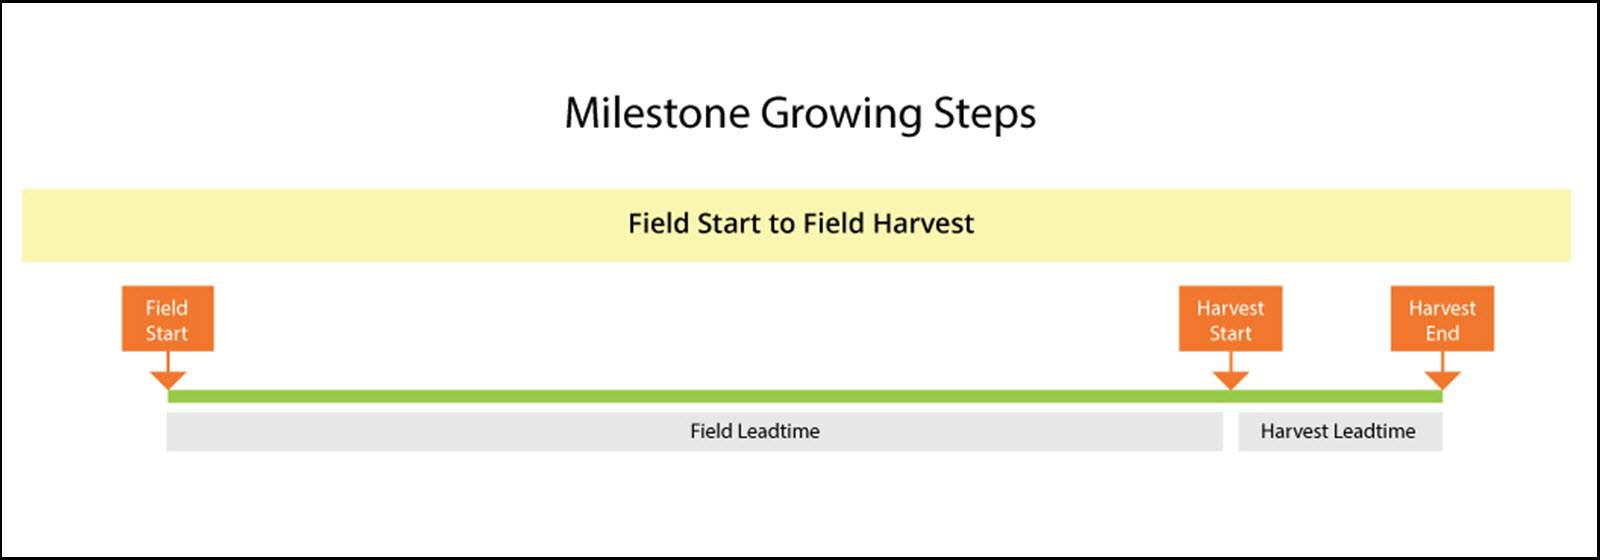 Here is an example of Farm Production Manager's Milestone Growing steps; it shows potential milestones for direct field start to field harvest process. Milestone Growing steps simplify scheduling.